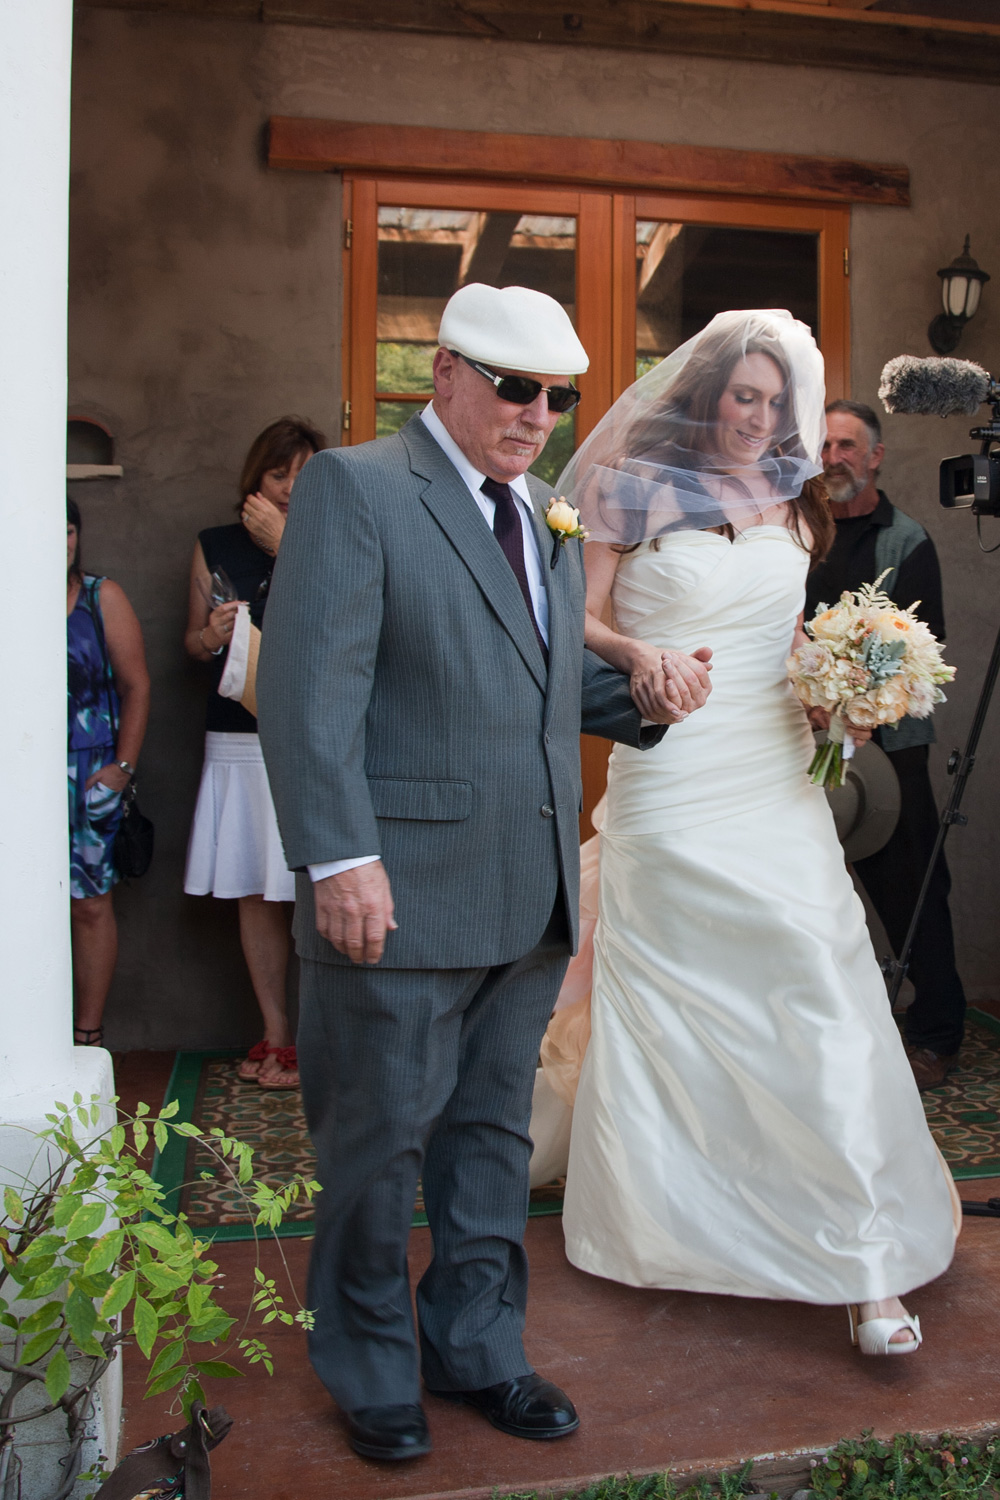 Allie's father walks her down the aisle